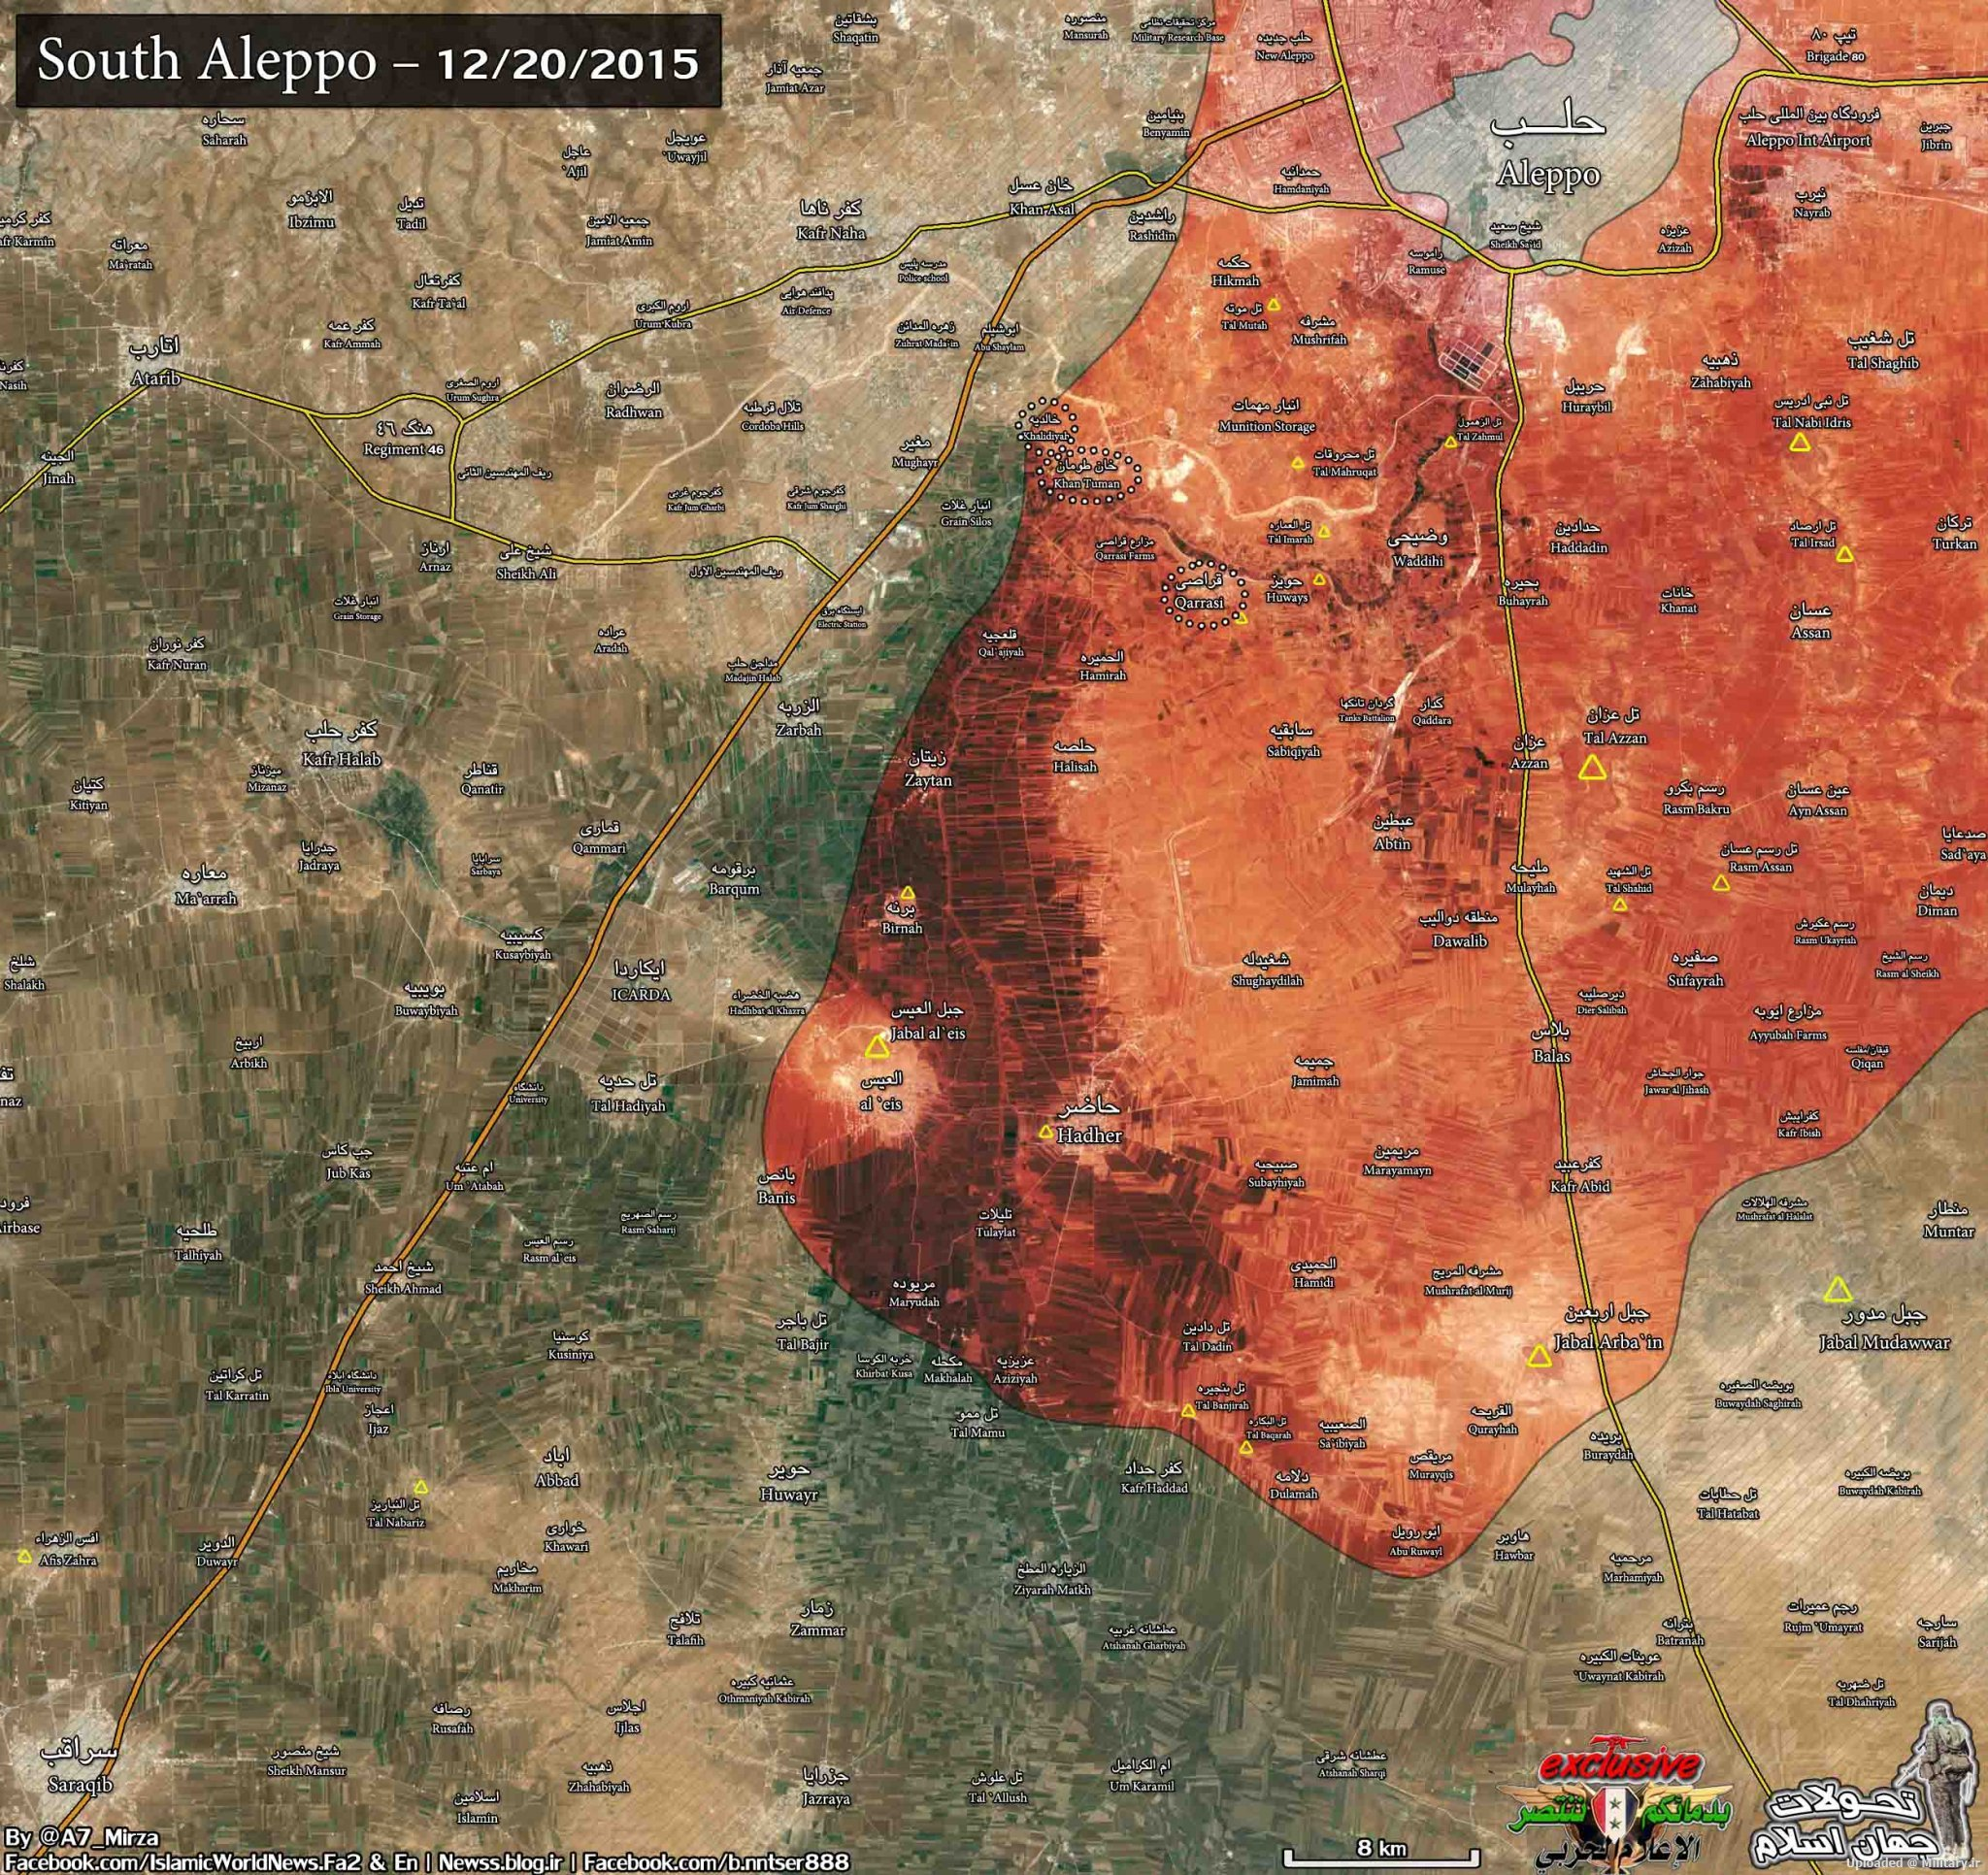 South_Aleppo_8km_20dec_29azar_loww.JPG